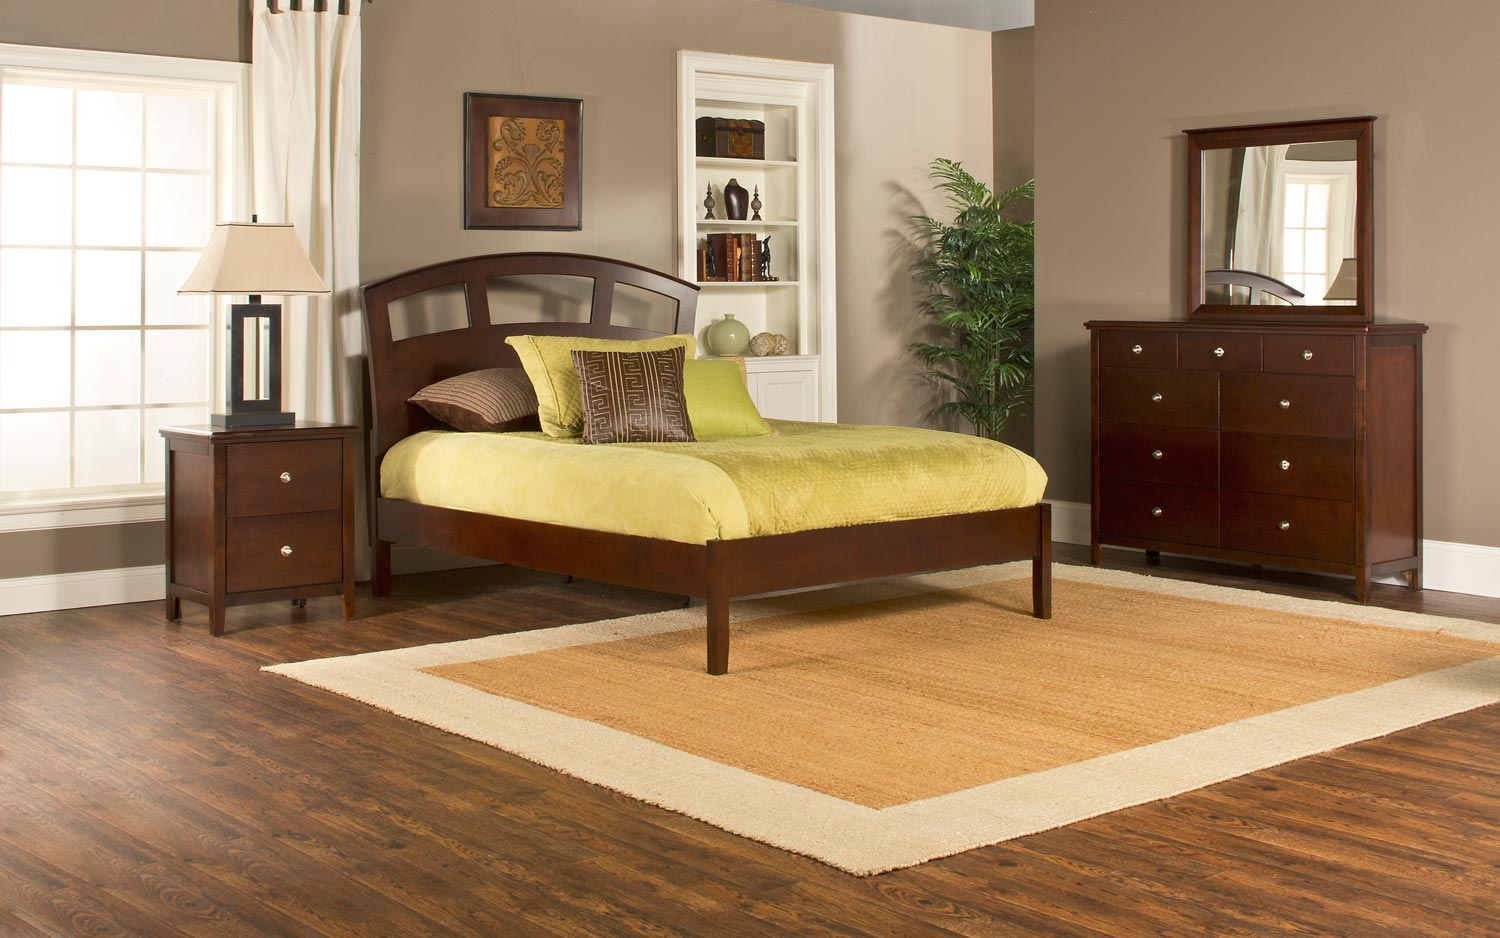 Hillsdale Metro Riva Platform 4-Piece Bedroom Collection - Cherry